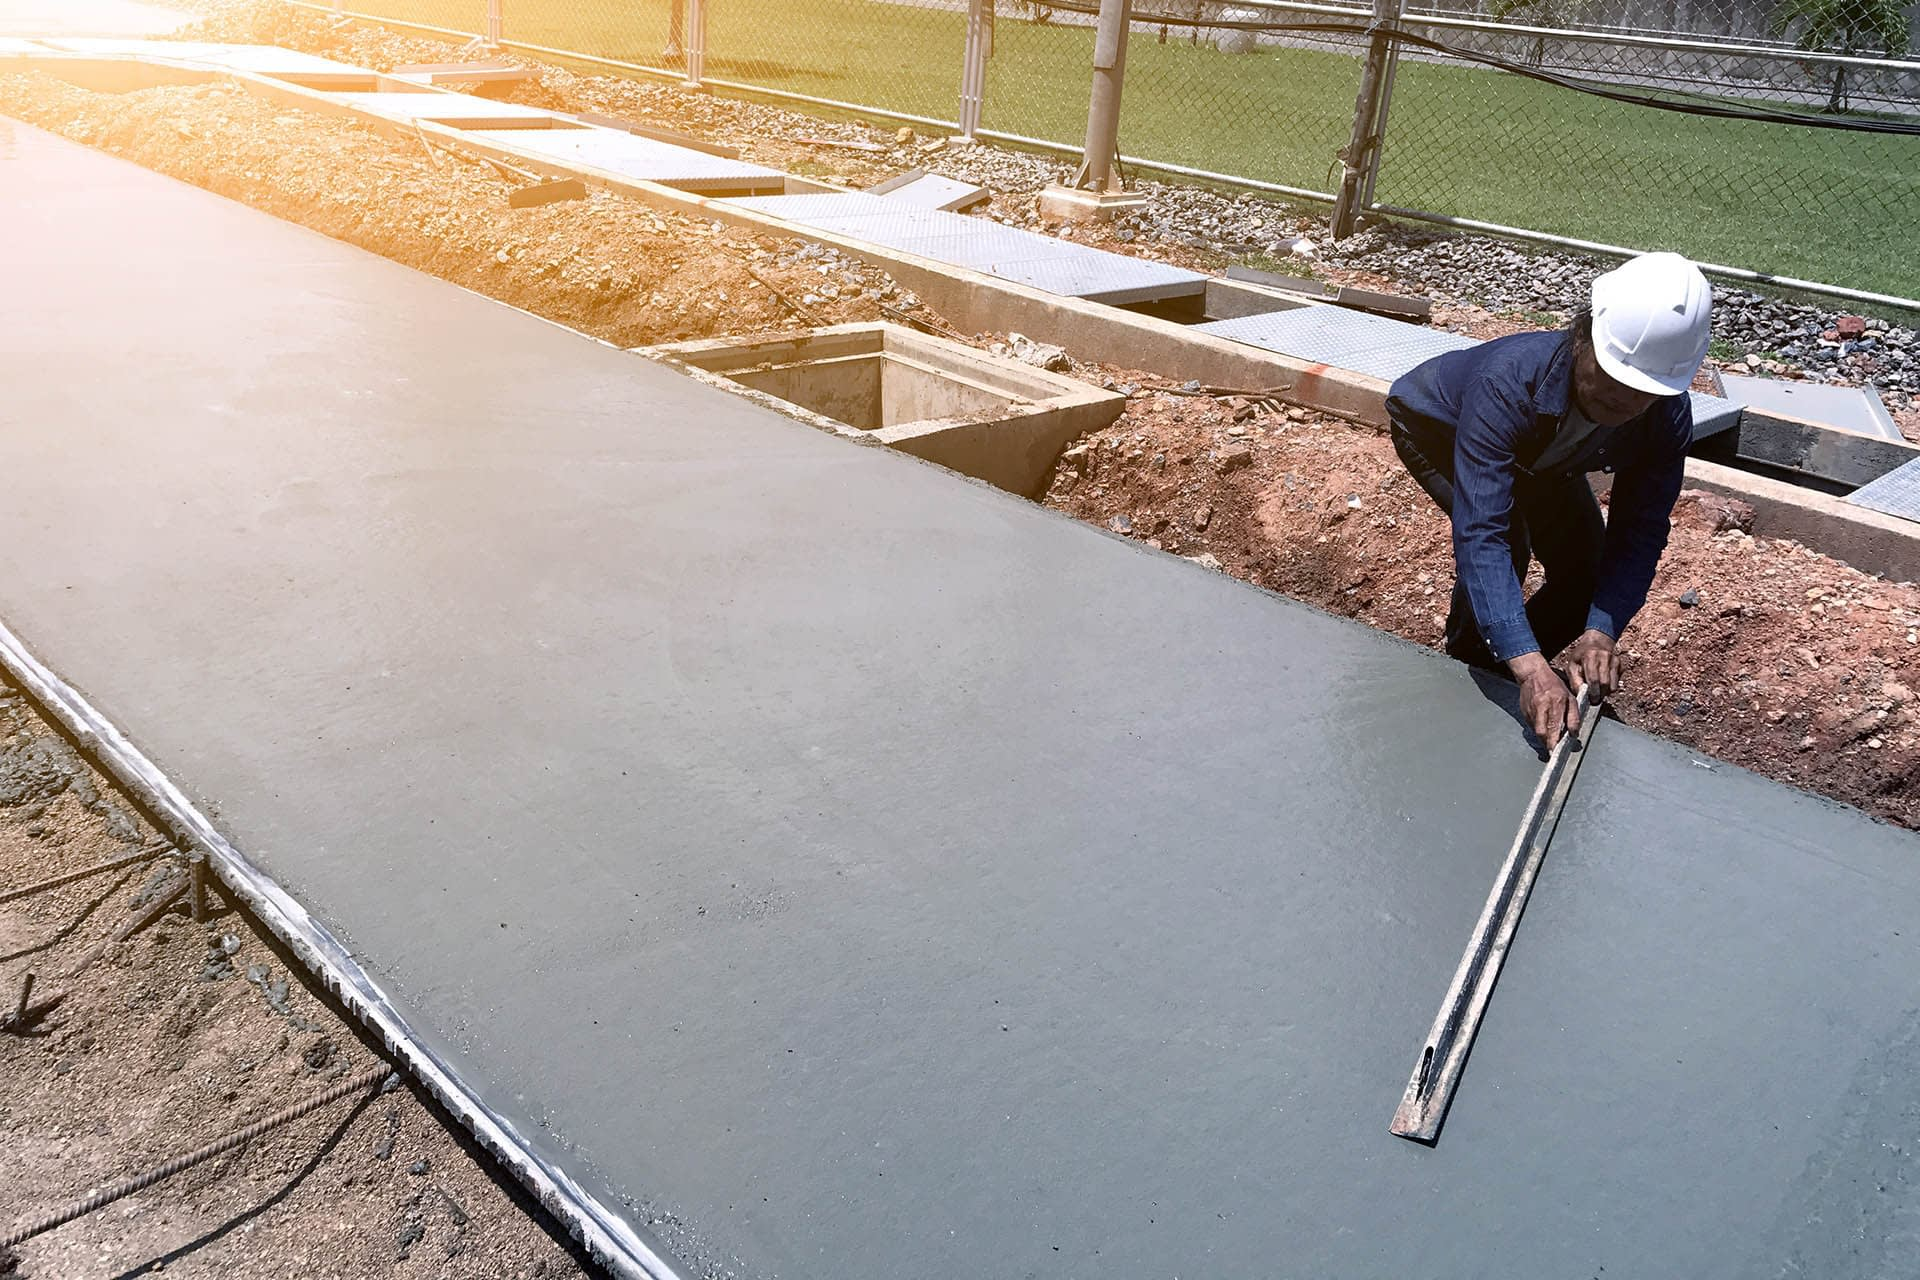 cement-laying-screeding-base-building-materials